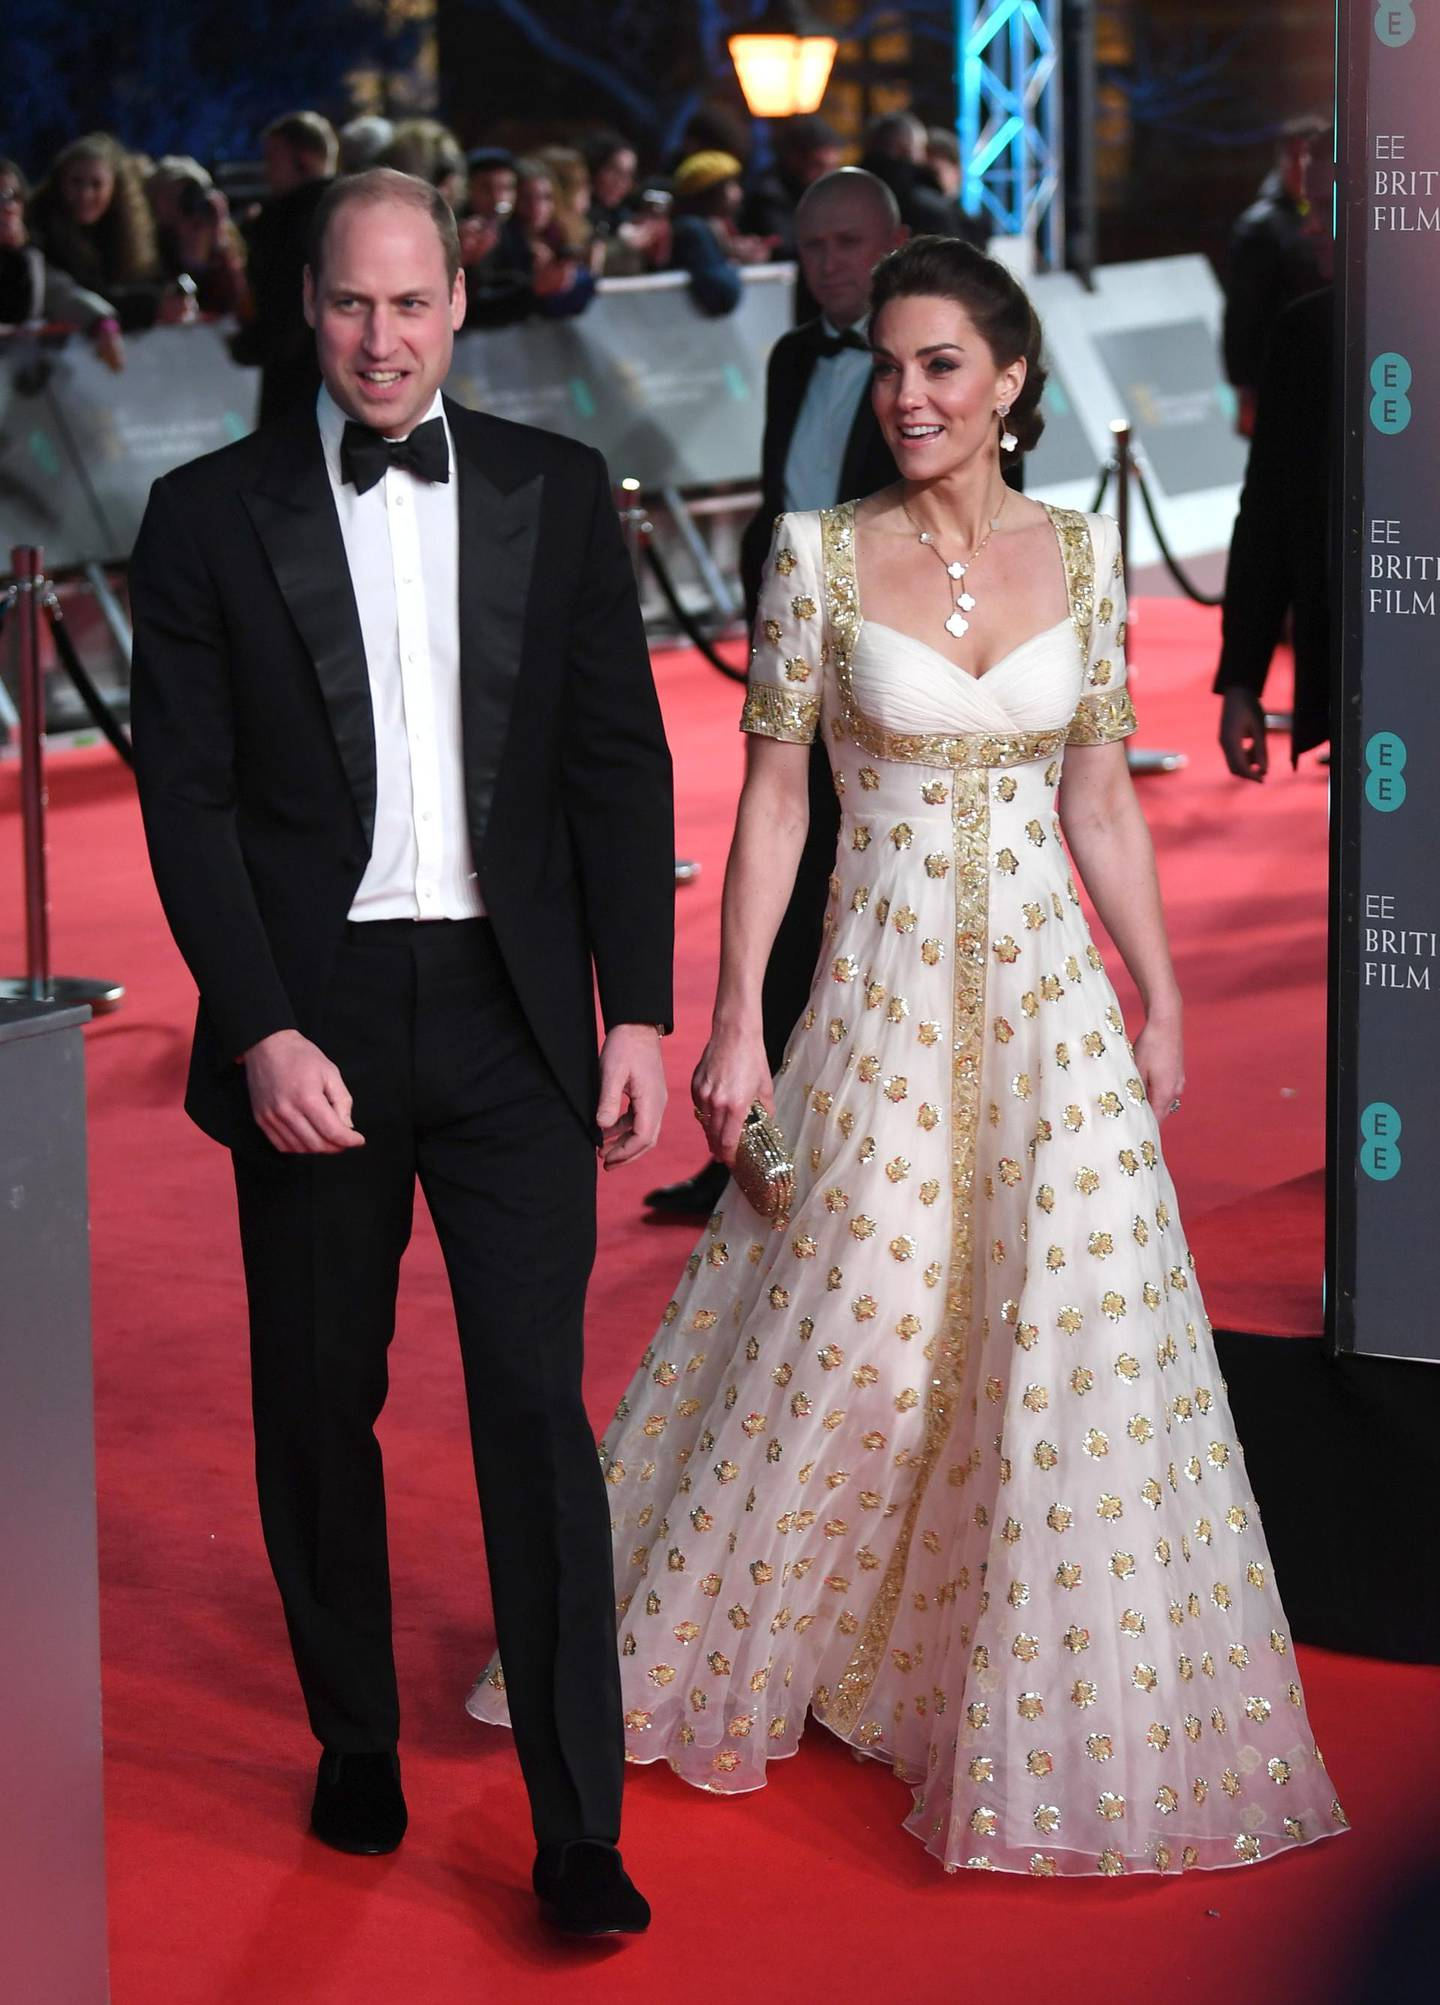 epa08188808 (L-R) Britain's William and Catherine, Duke and Duchess of Cambridge attend the 73rd annual British Academy Film Award at the Royal Albert Hall in London, Britain, 02 February 2020. The ceremony is hosted by the British Academy of Film and Television Arts (BAFTA).  EPA/NEIL HALL *** Local Caption *** 54975994